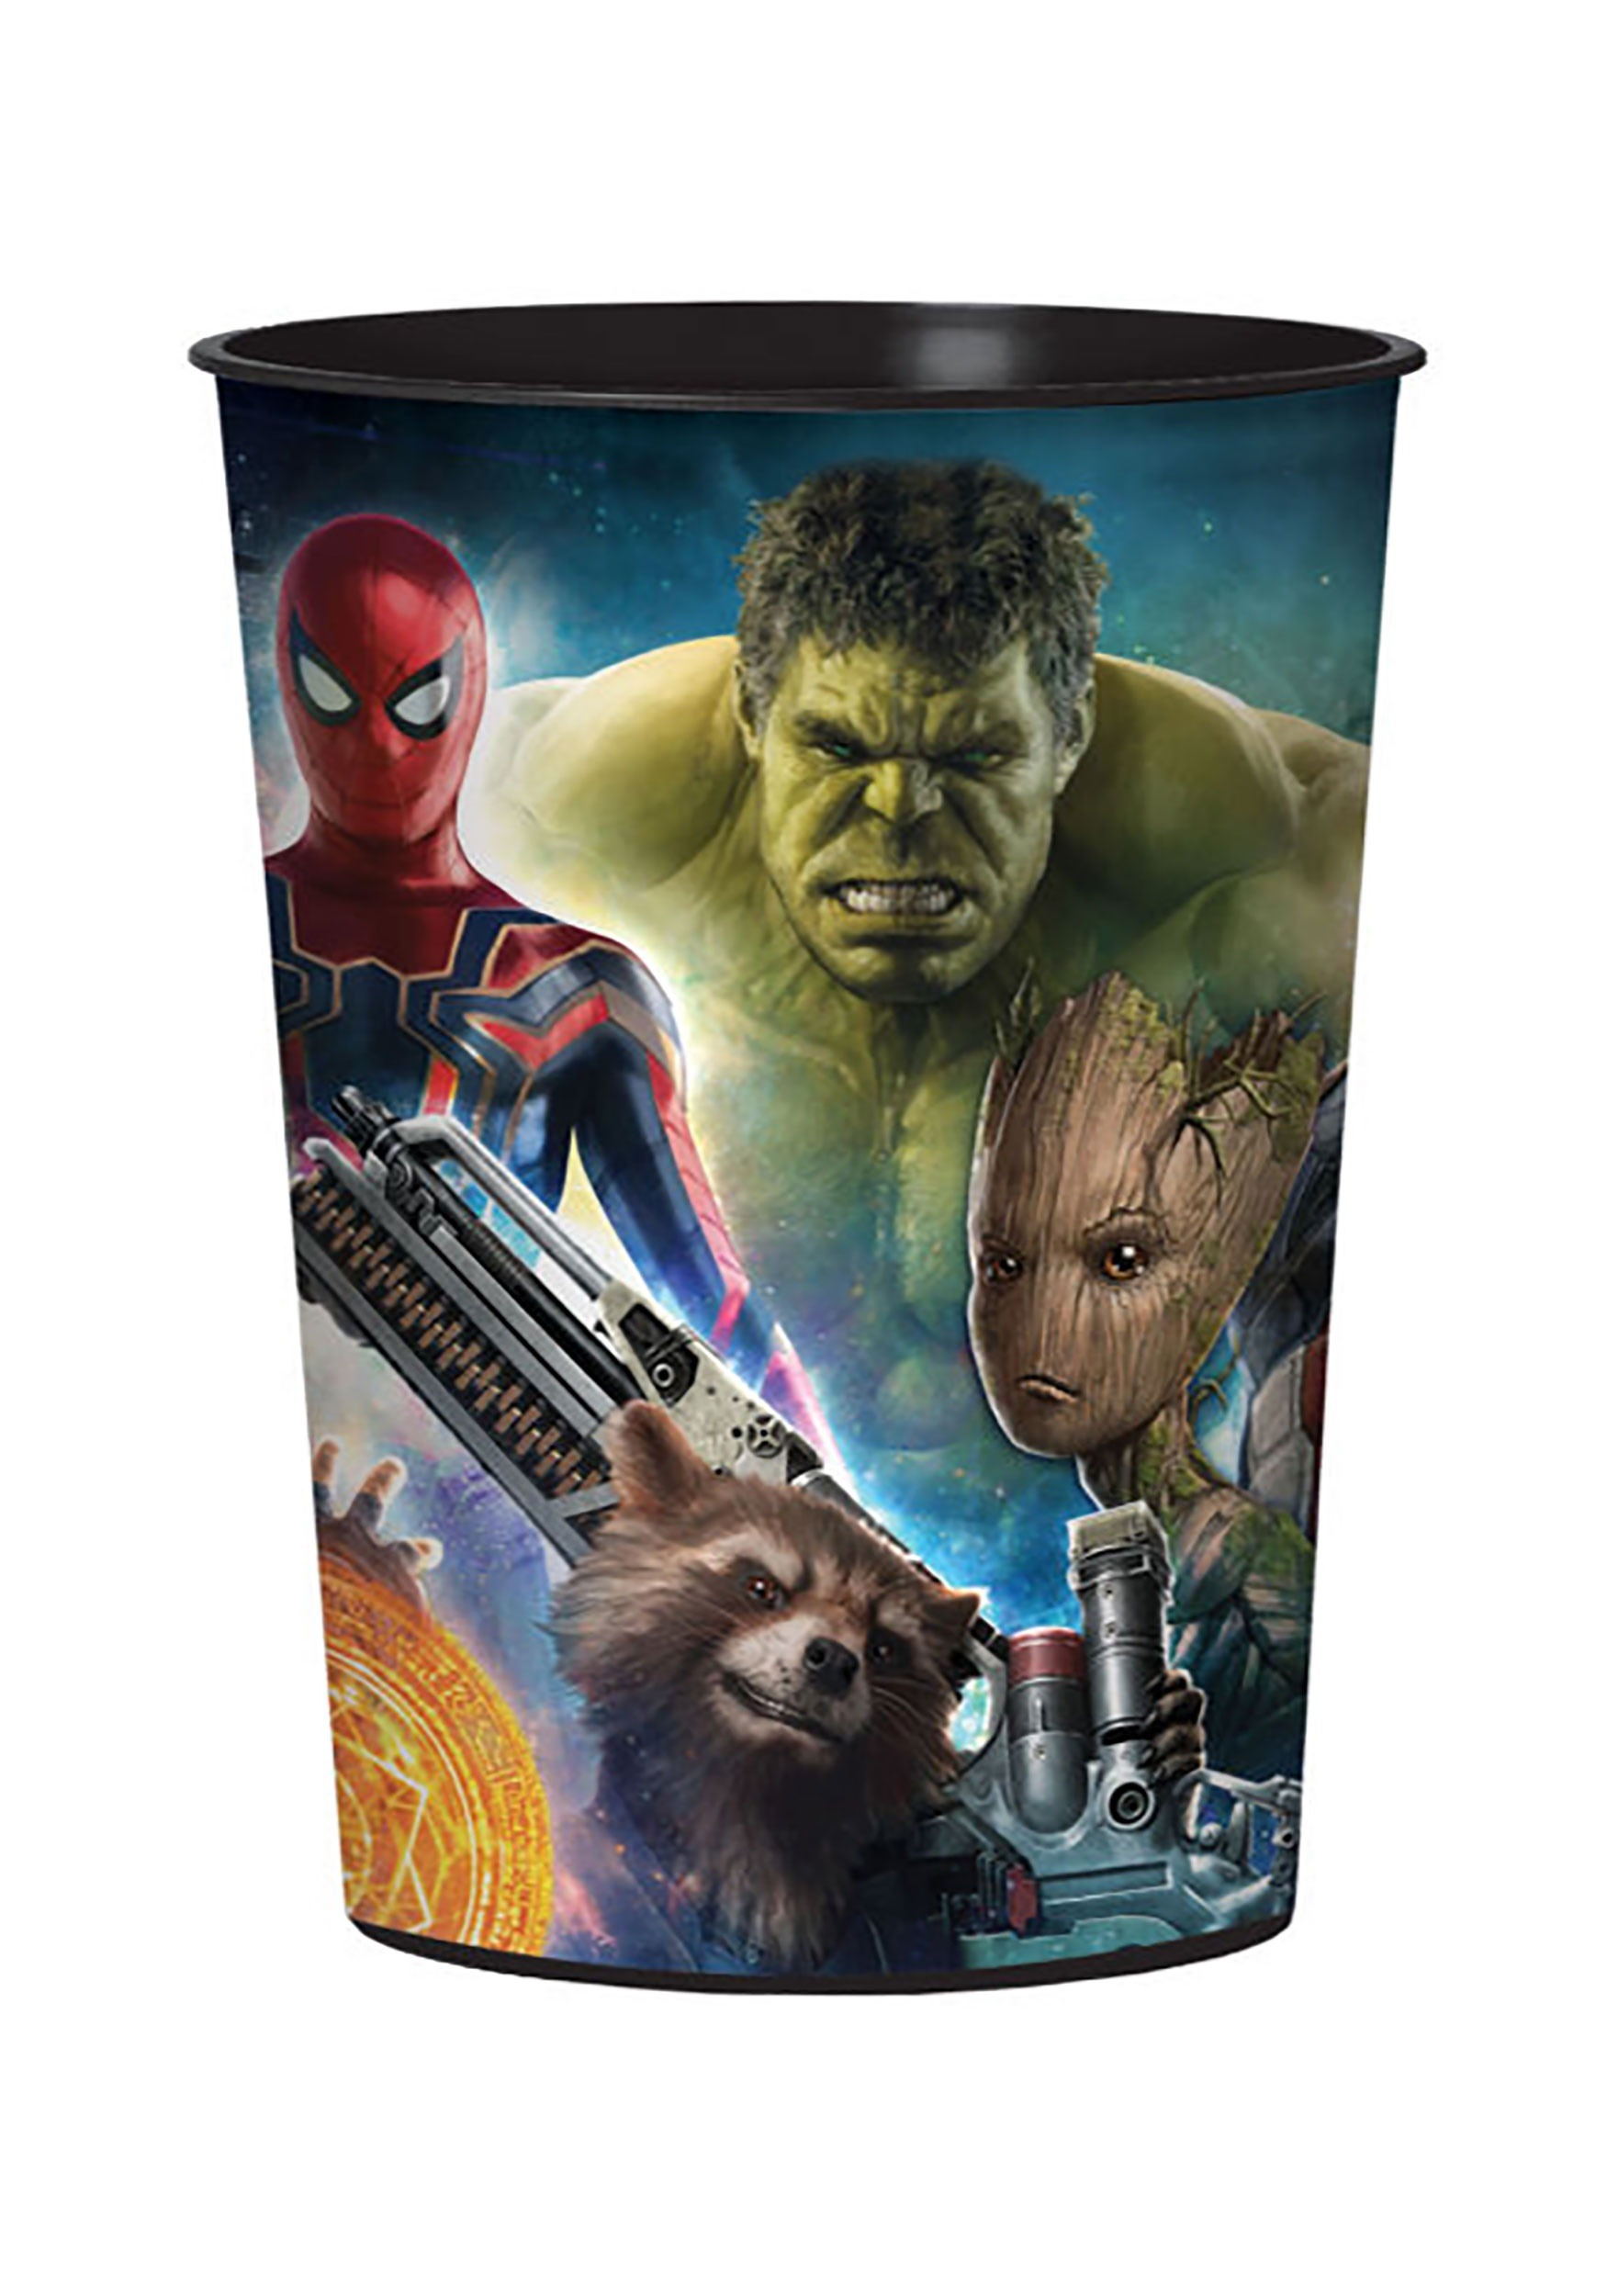 16_oz_Marvel_Avengers_Infinity_Wars_Plastic_Party_Cup